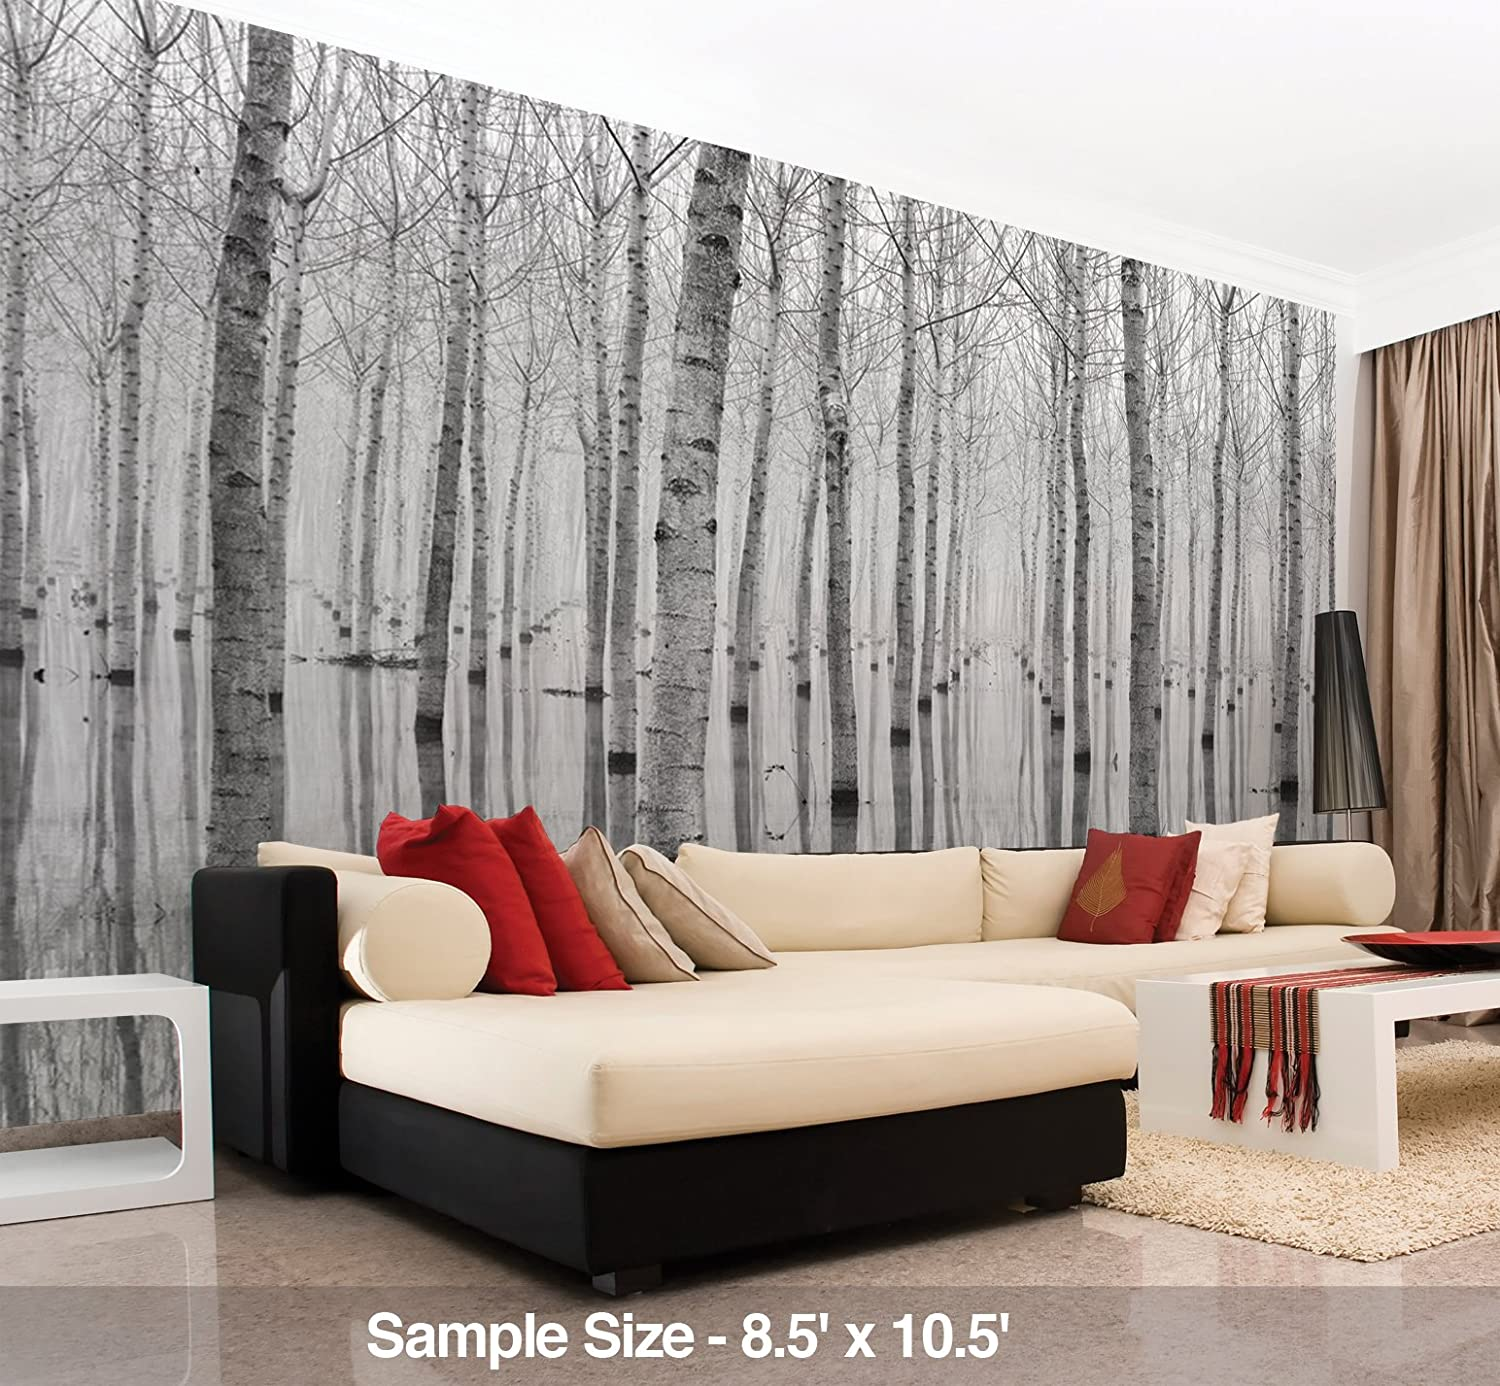 Jplo9|#Jp London MDXL1X392386 Jpl and Joanne/_Flj Present Lakes Secret Reflection Lake Trees Morning 12 Ft Wide by 8.5 Ft High Peel and Stick Fully Removable Wall Mural Extra Large